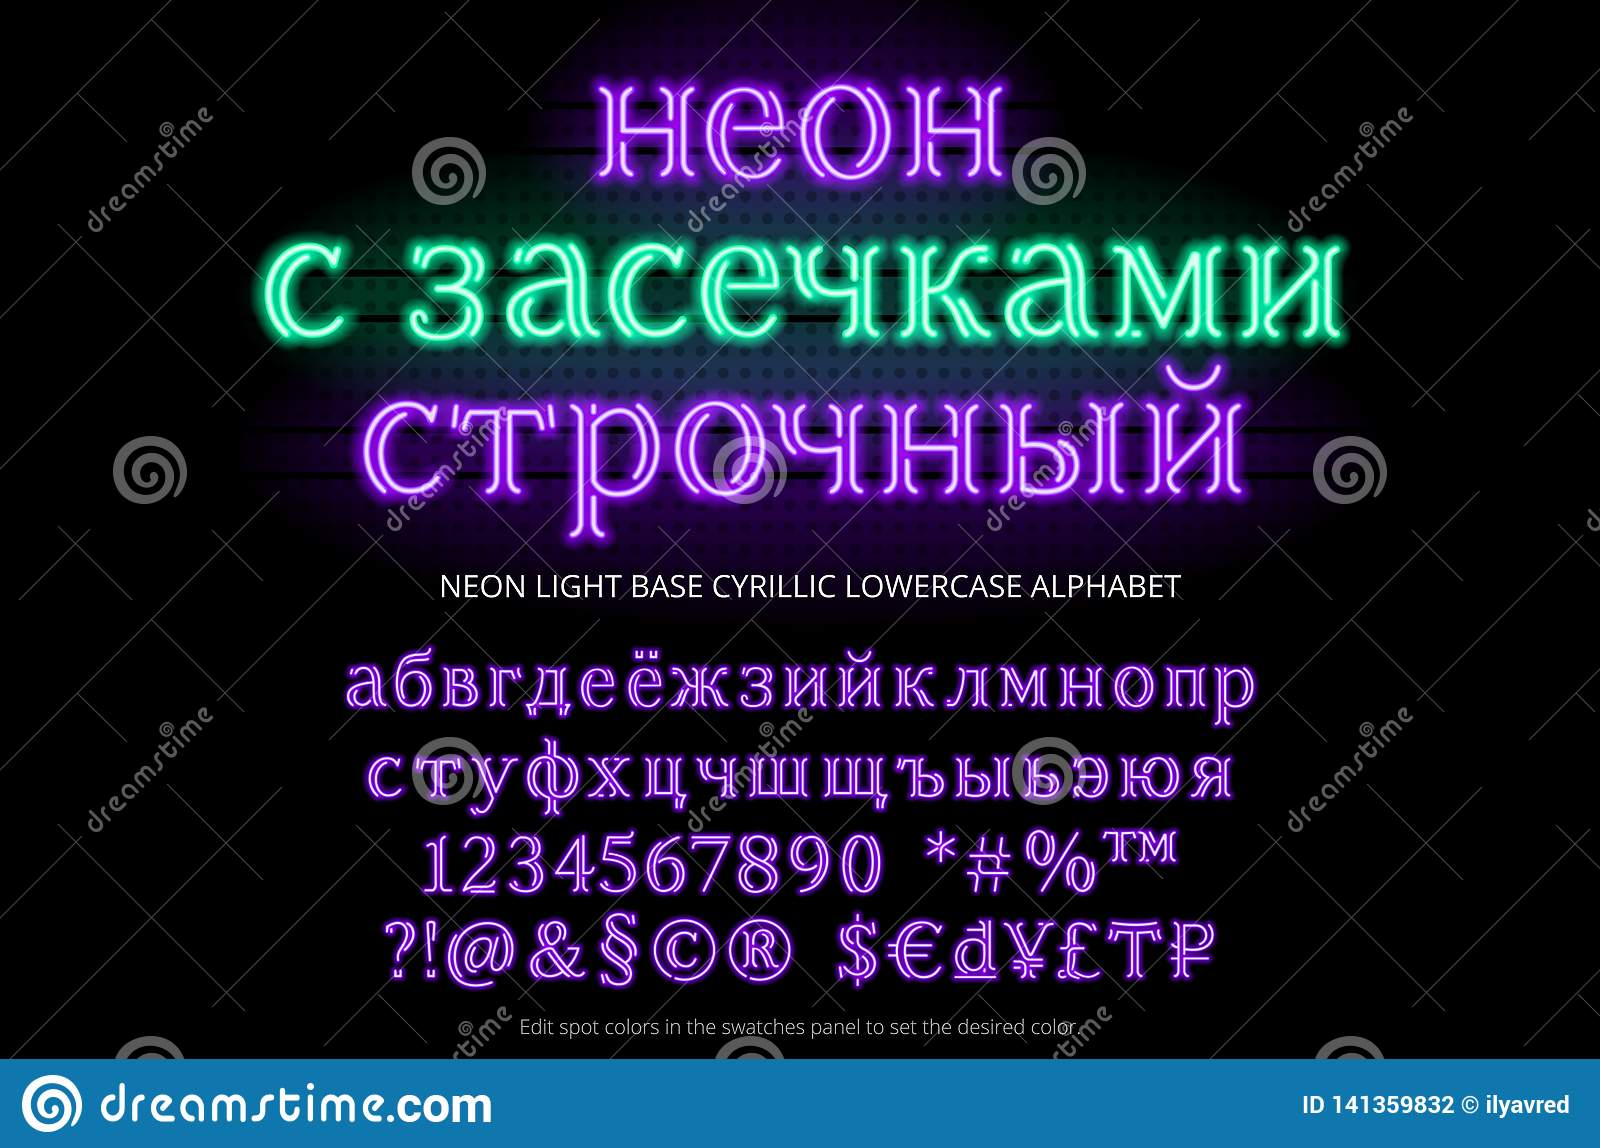 Neon tube alphabet typeface. Neon with serifs lowercase numbers, special symbols, characters and currency sign. Base